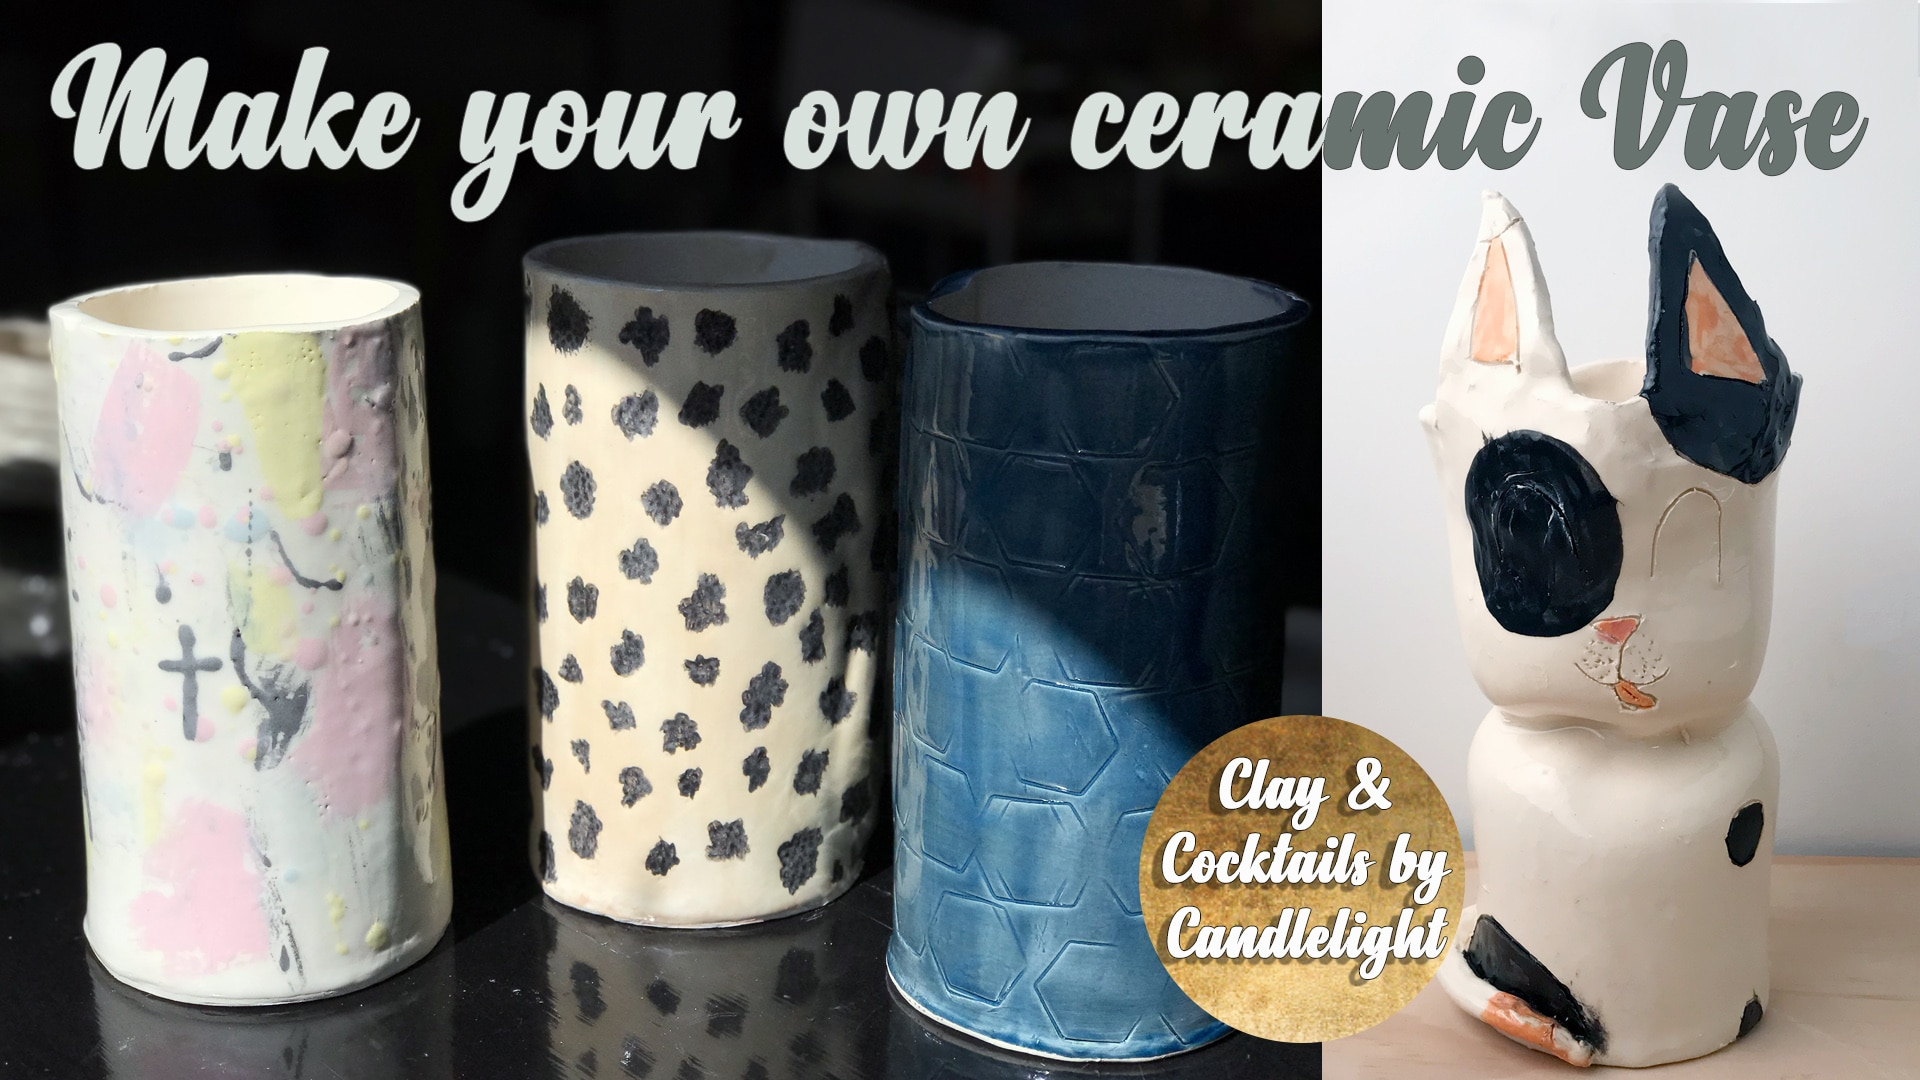 Pottery Class - Make Your Own Ceramic Vase